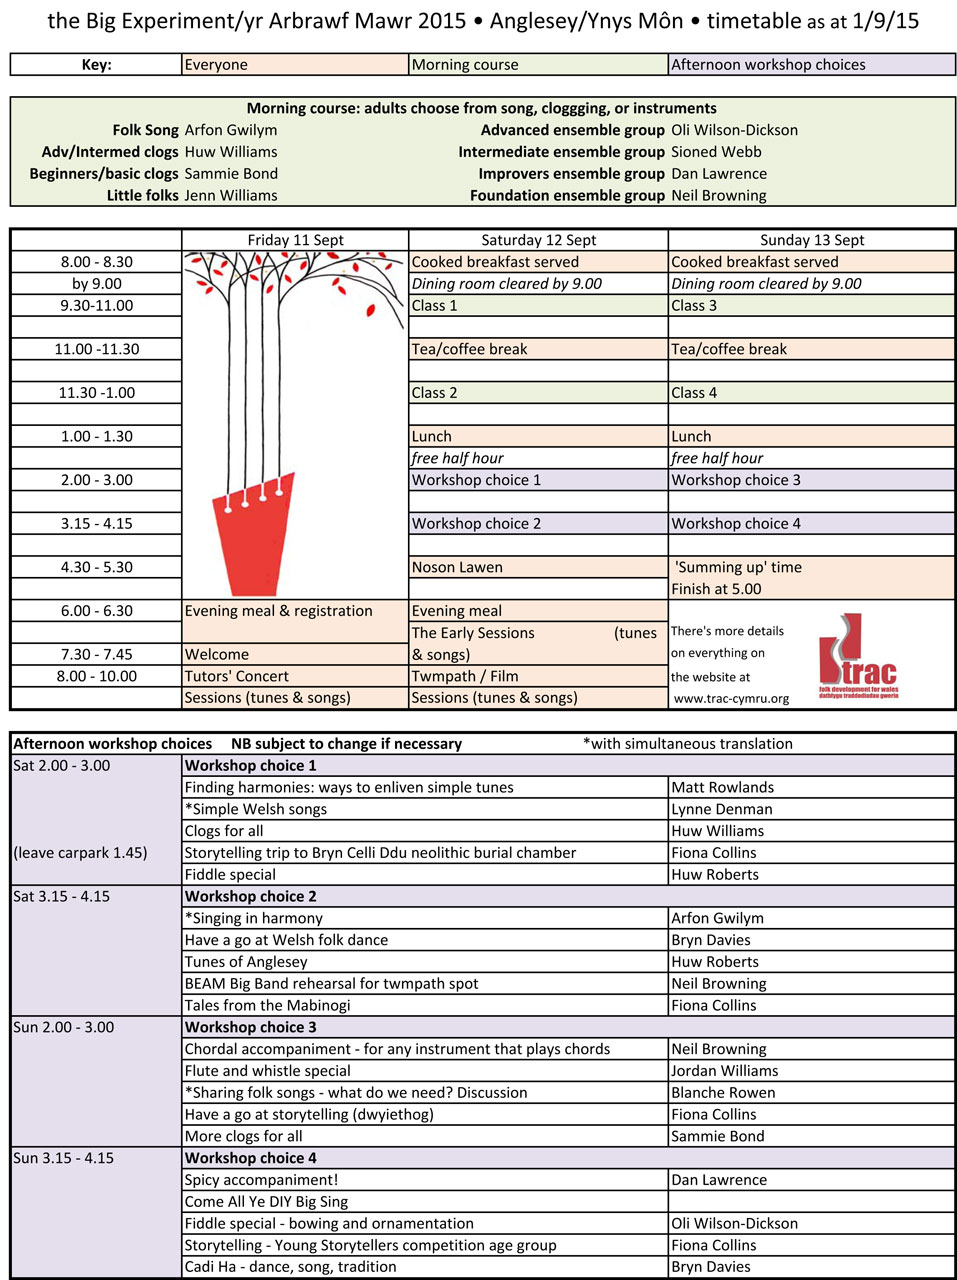 Timetable for the Big Experiment 2015